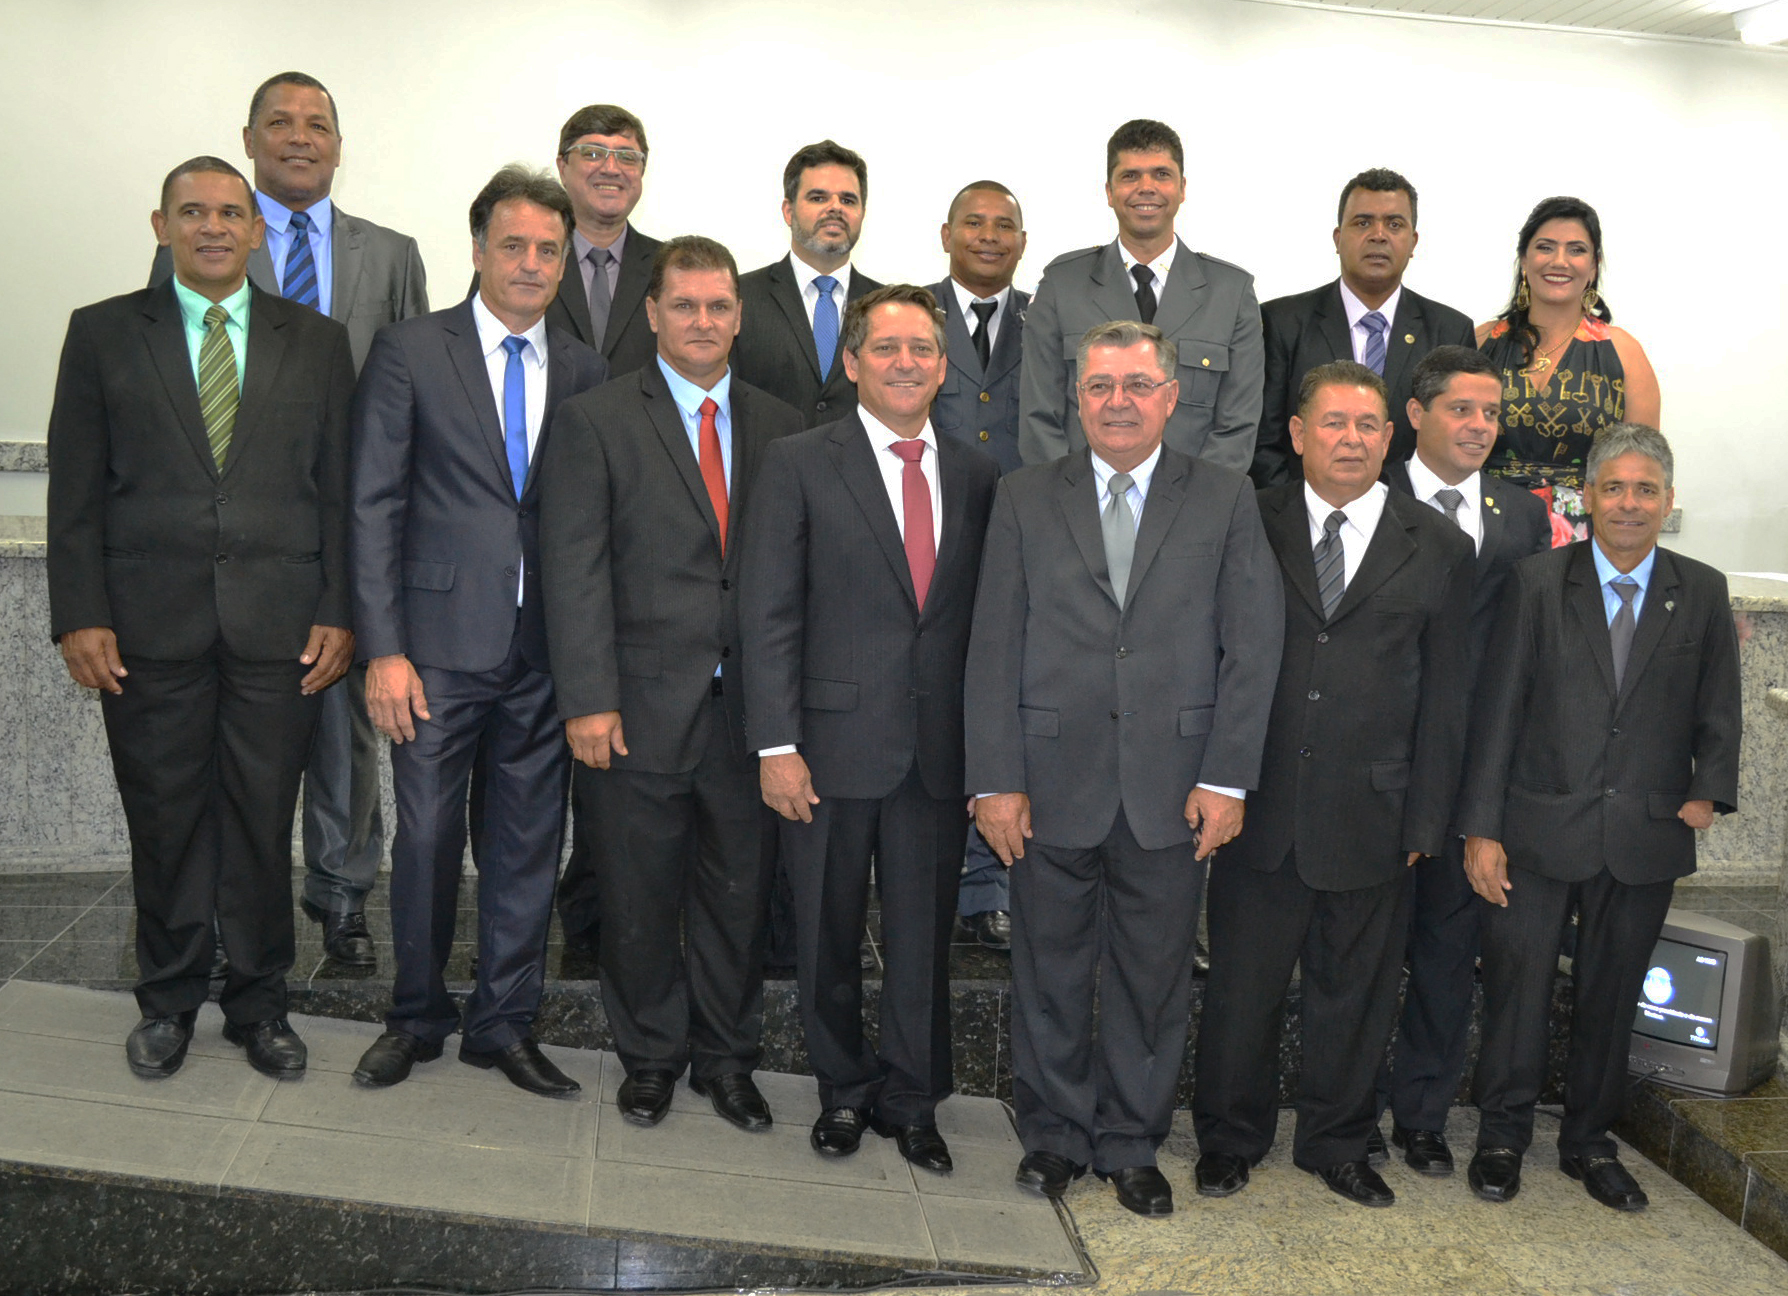 Posse de vereadores e prefeito lota plenário do legislativo